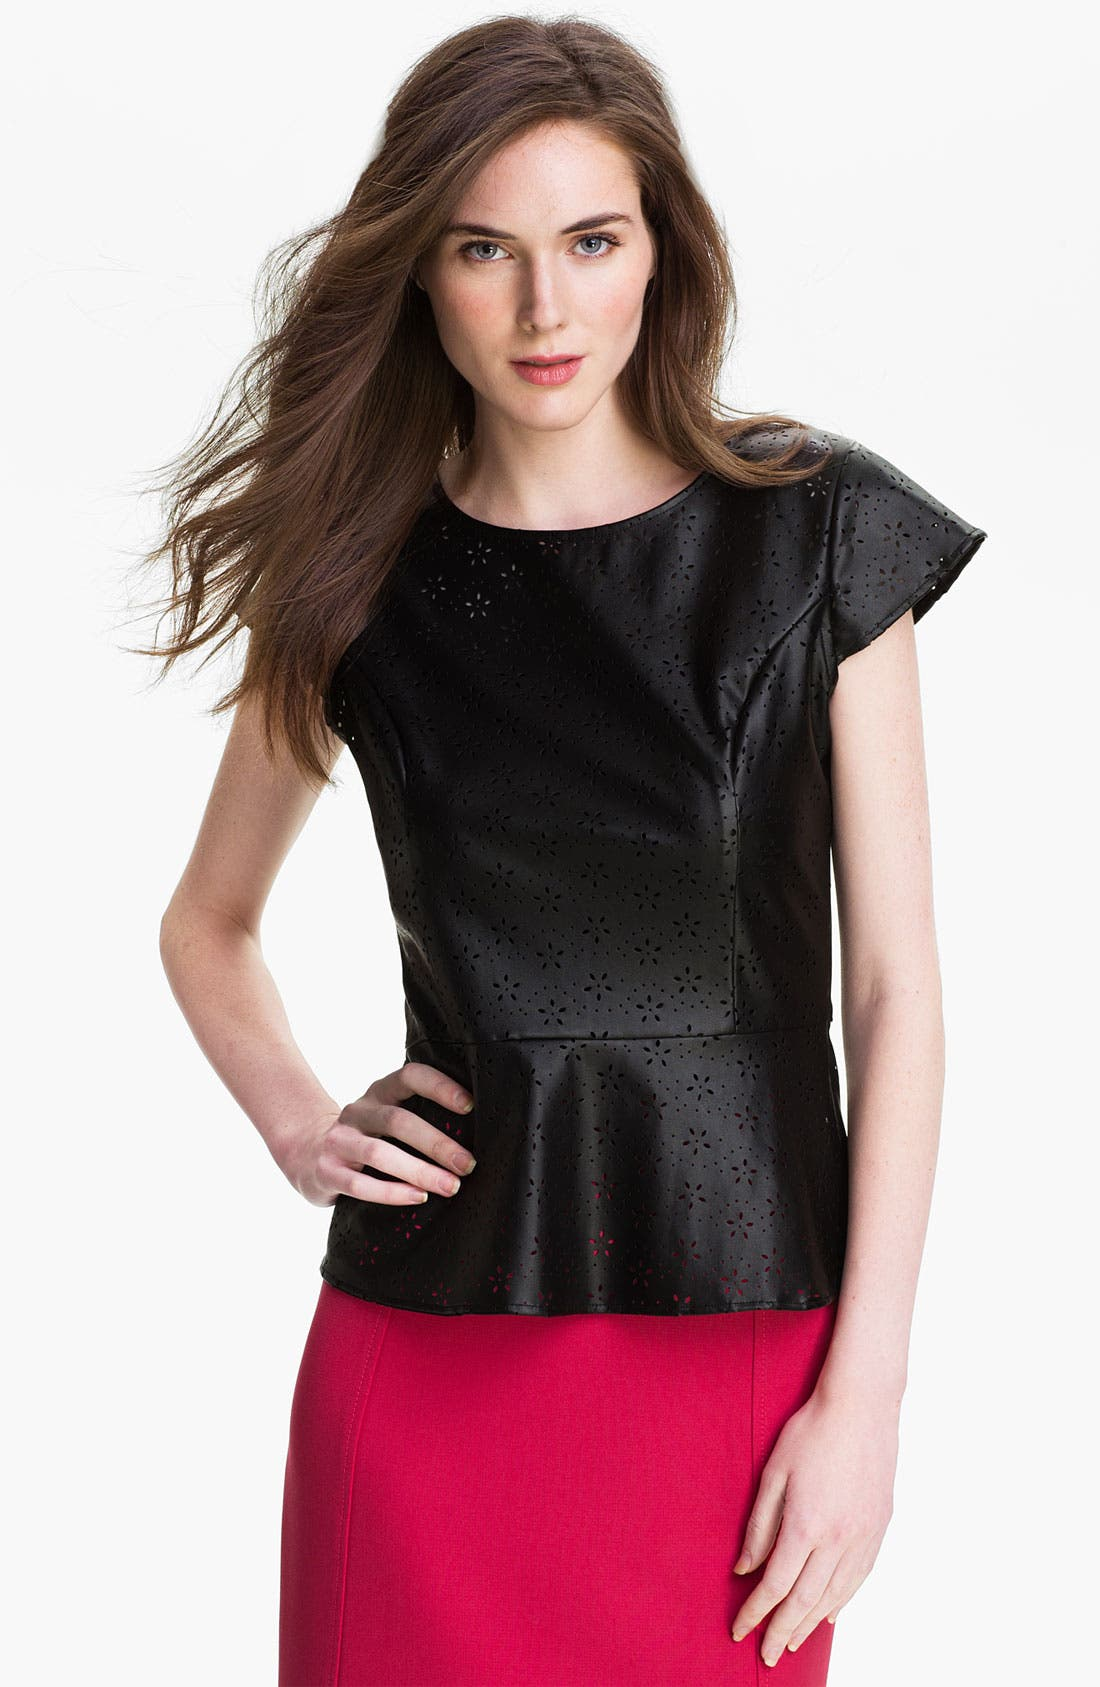 Main Image - Max & Mia Perforated Faux Leather Top